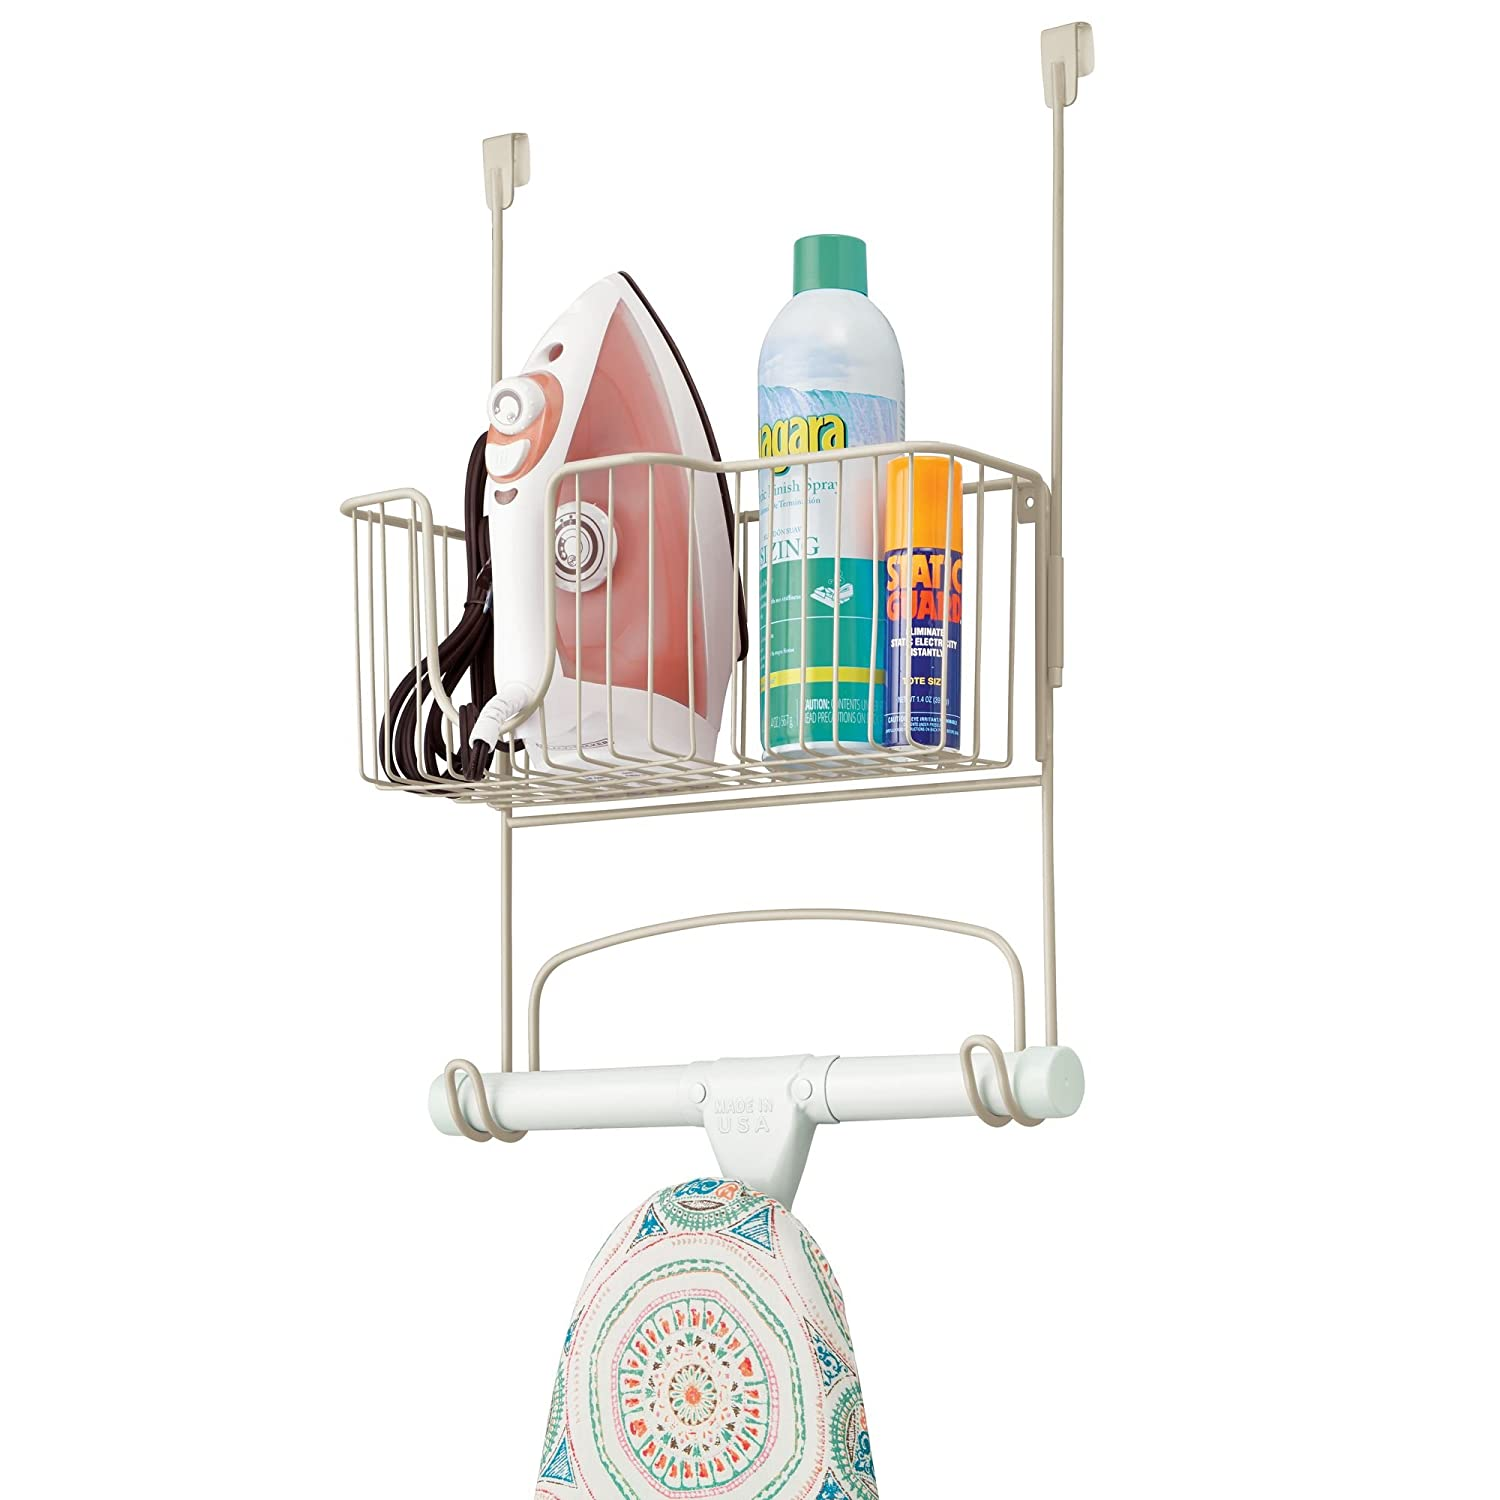 mDesign Metal Over The Door Ironing Board Holder with Large Storage Basket - Holds Iron, Board, Spray Bottles, Starch, Fabric Refresher Iron for Laundry Rooms - Bronze MetroDecor